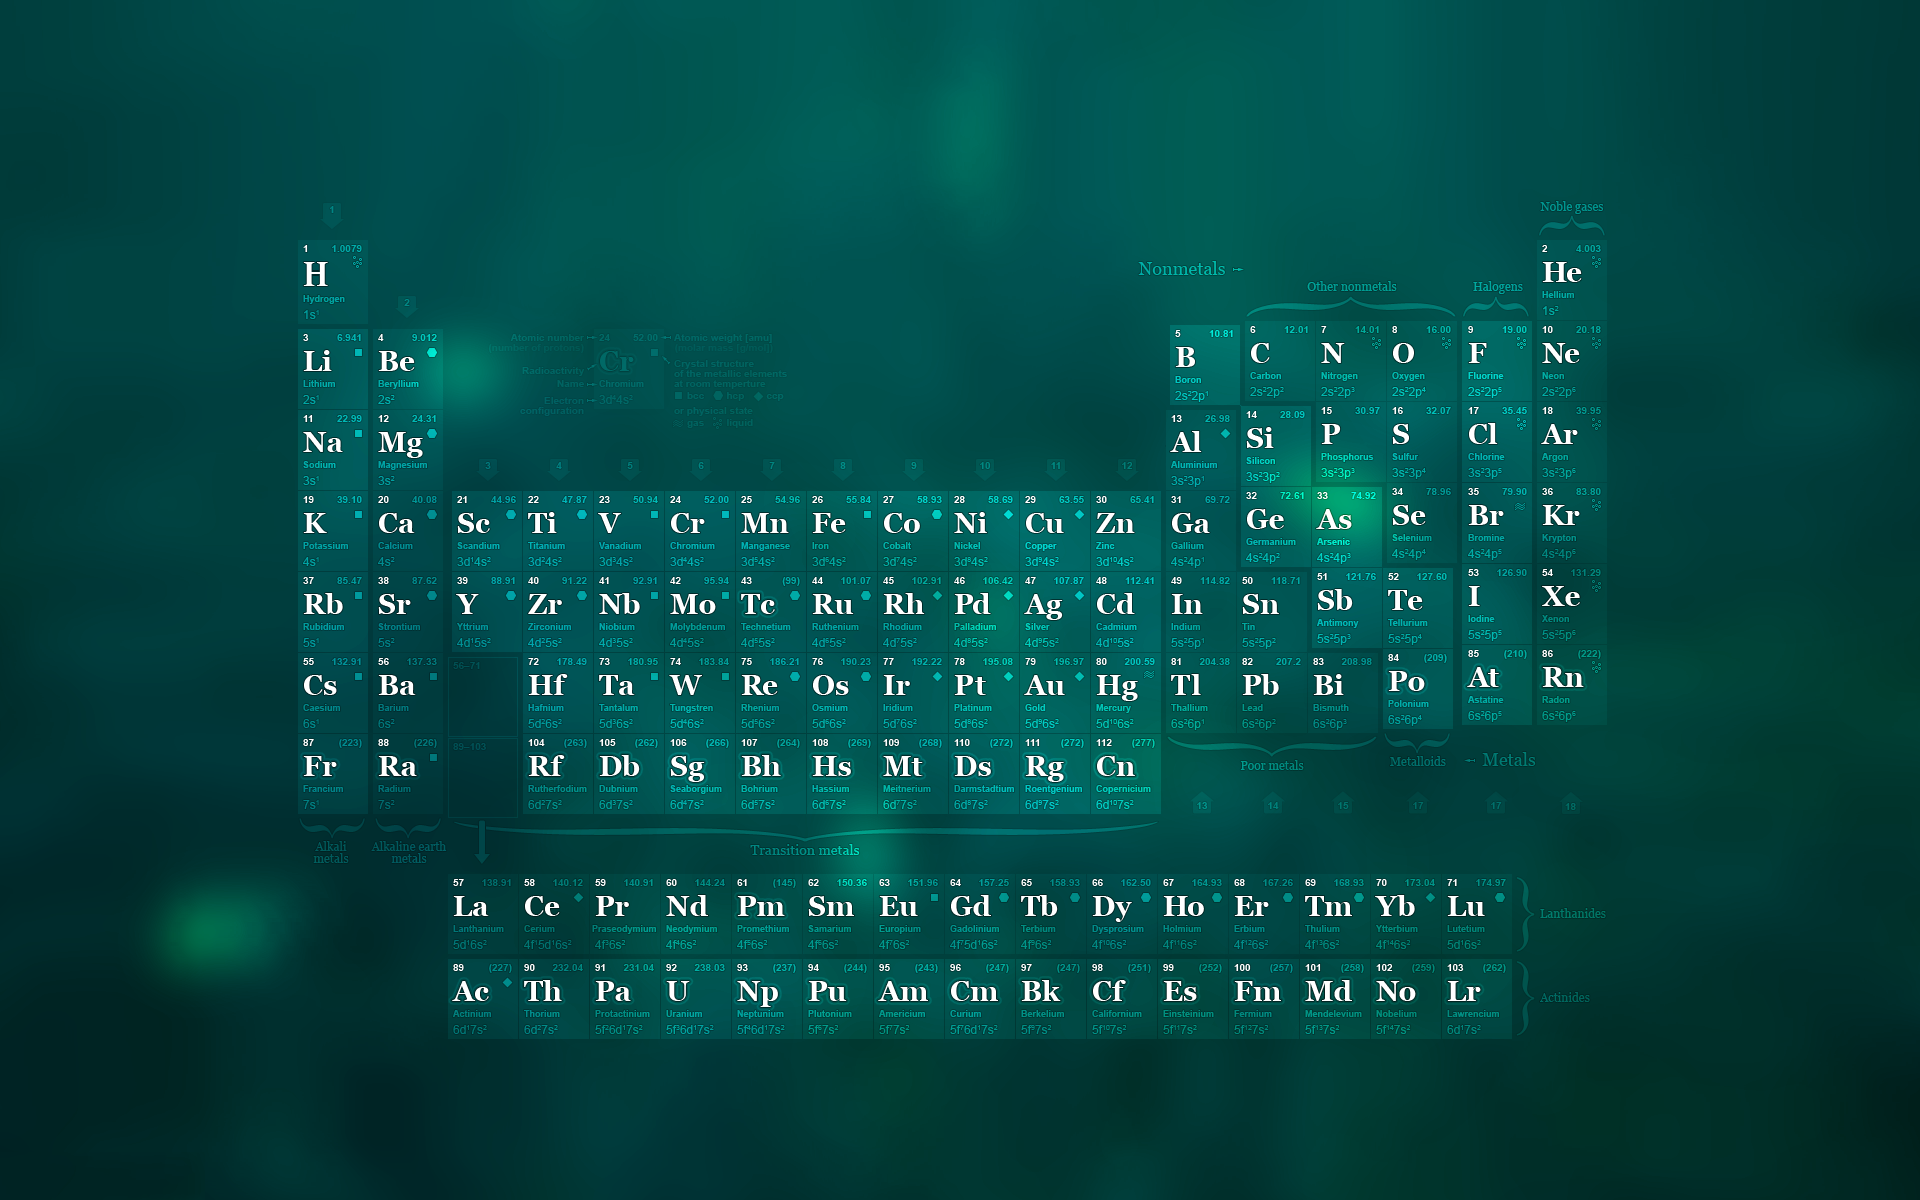 March 26, 2015 - 1920x1200 px Chemical Desktop Wallpapers